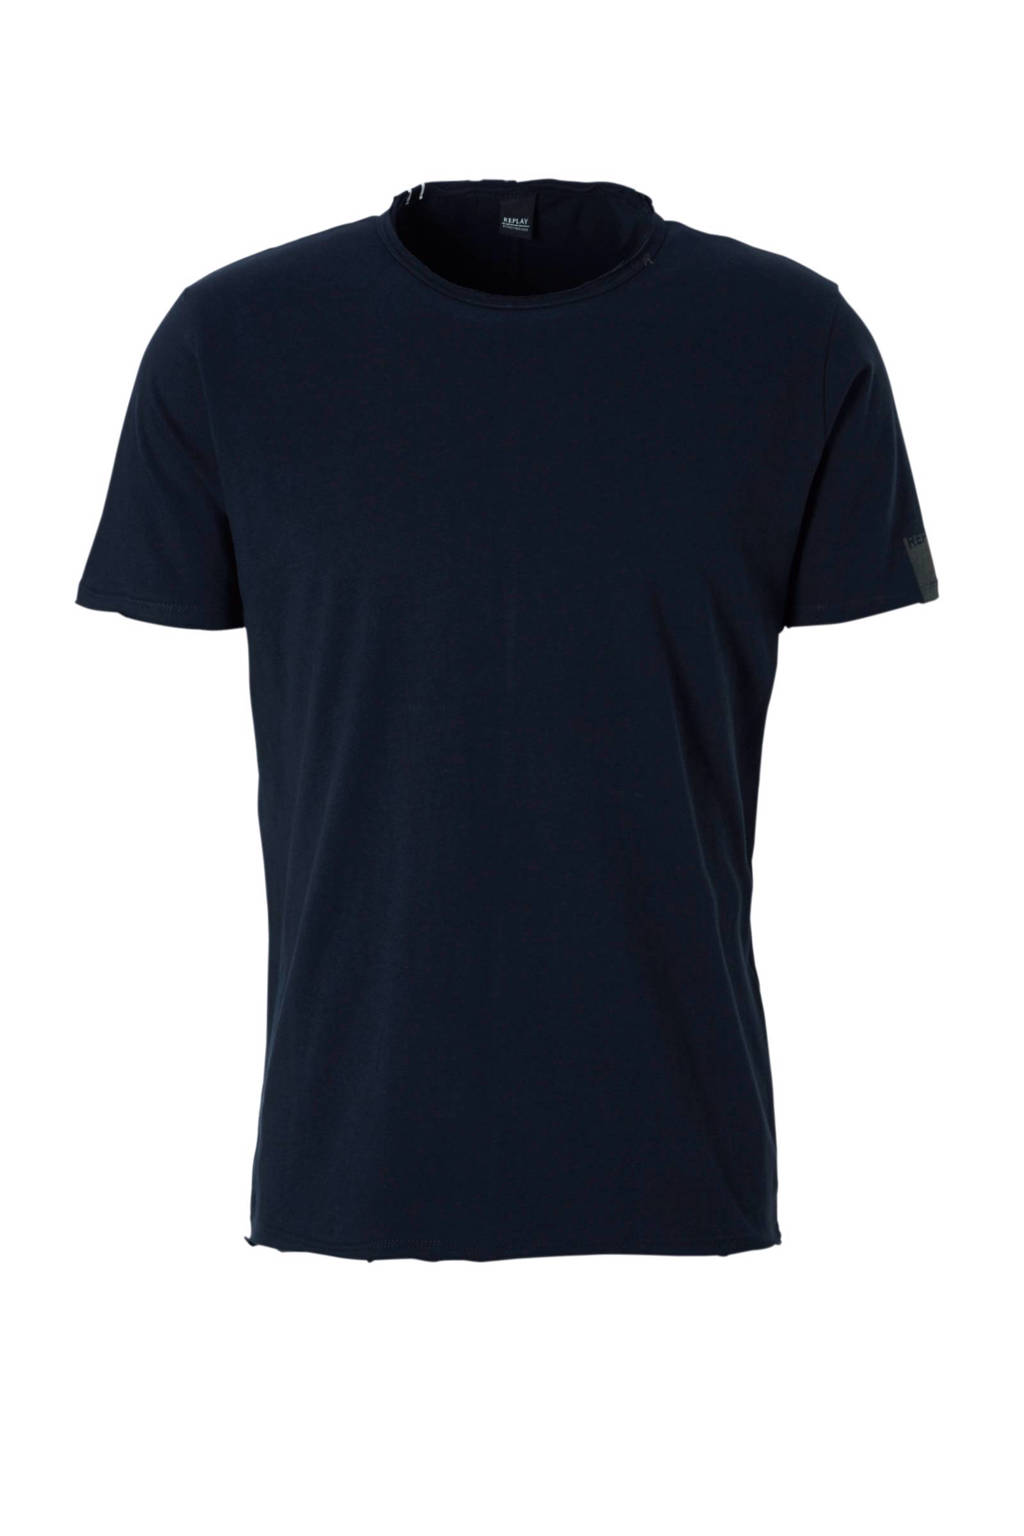 REPLAY T-shirt, Marine